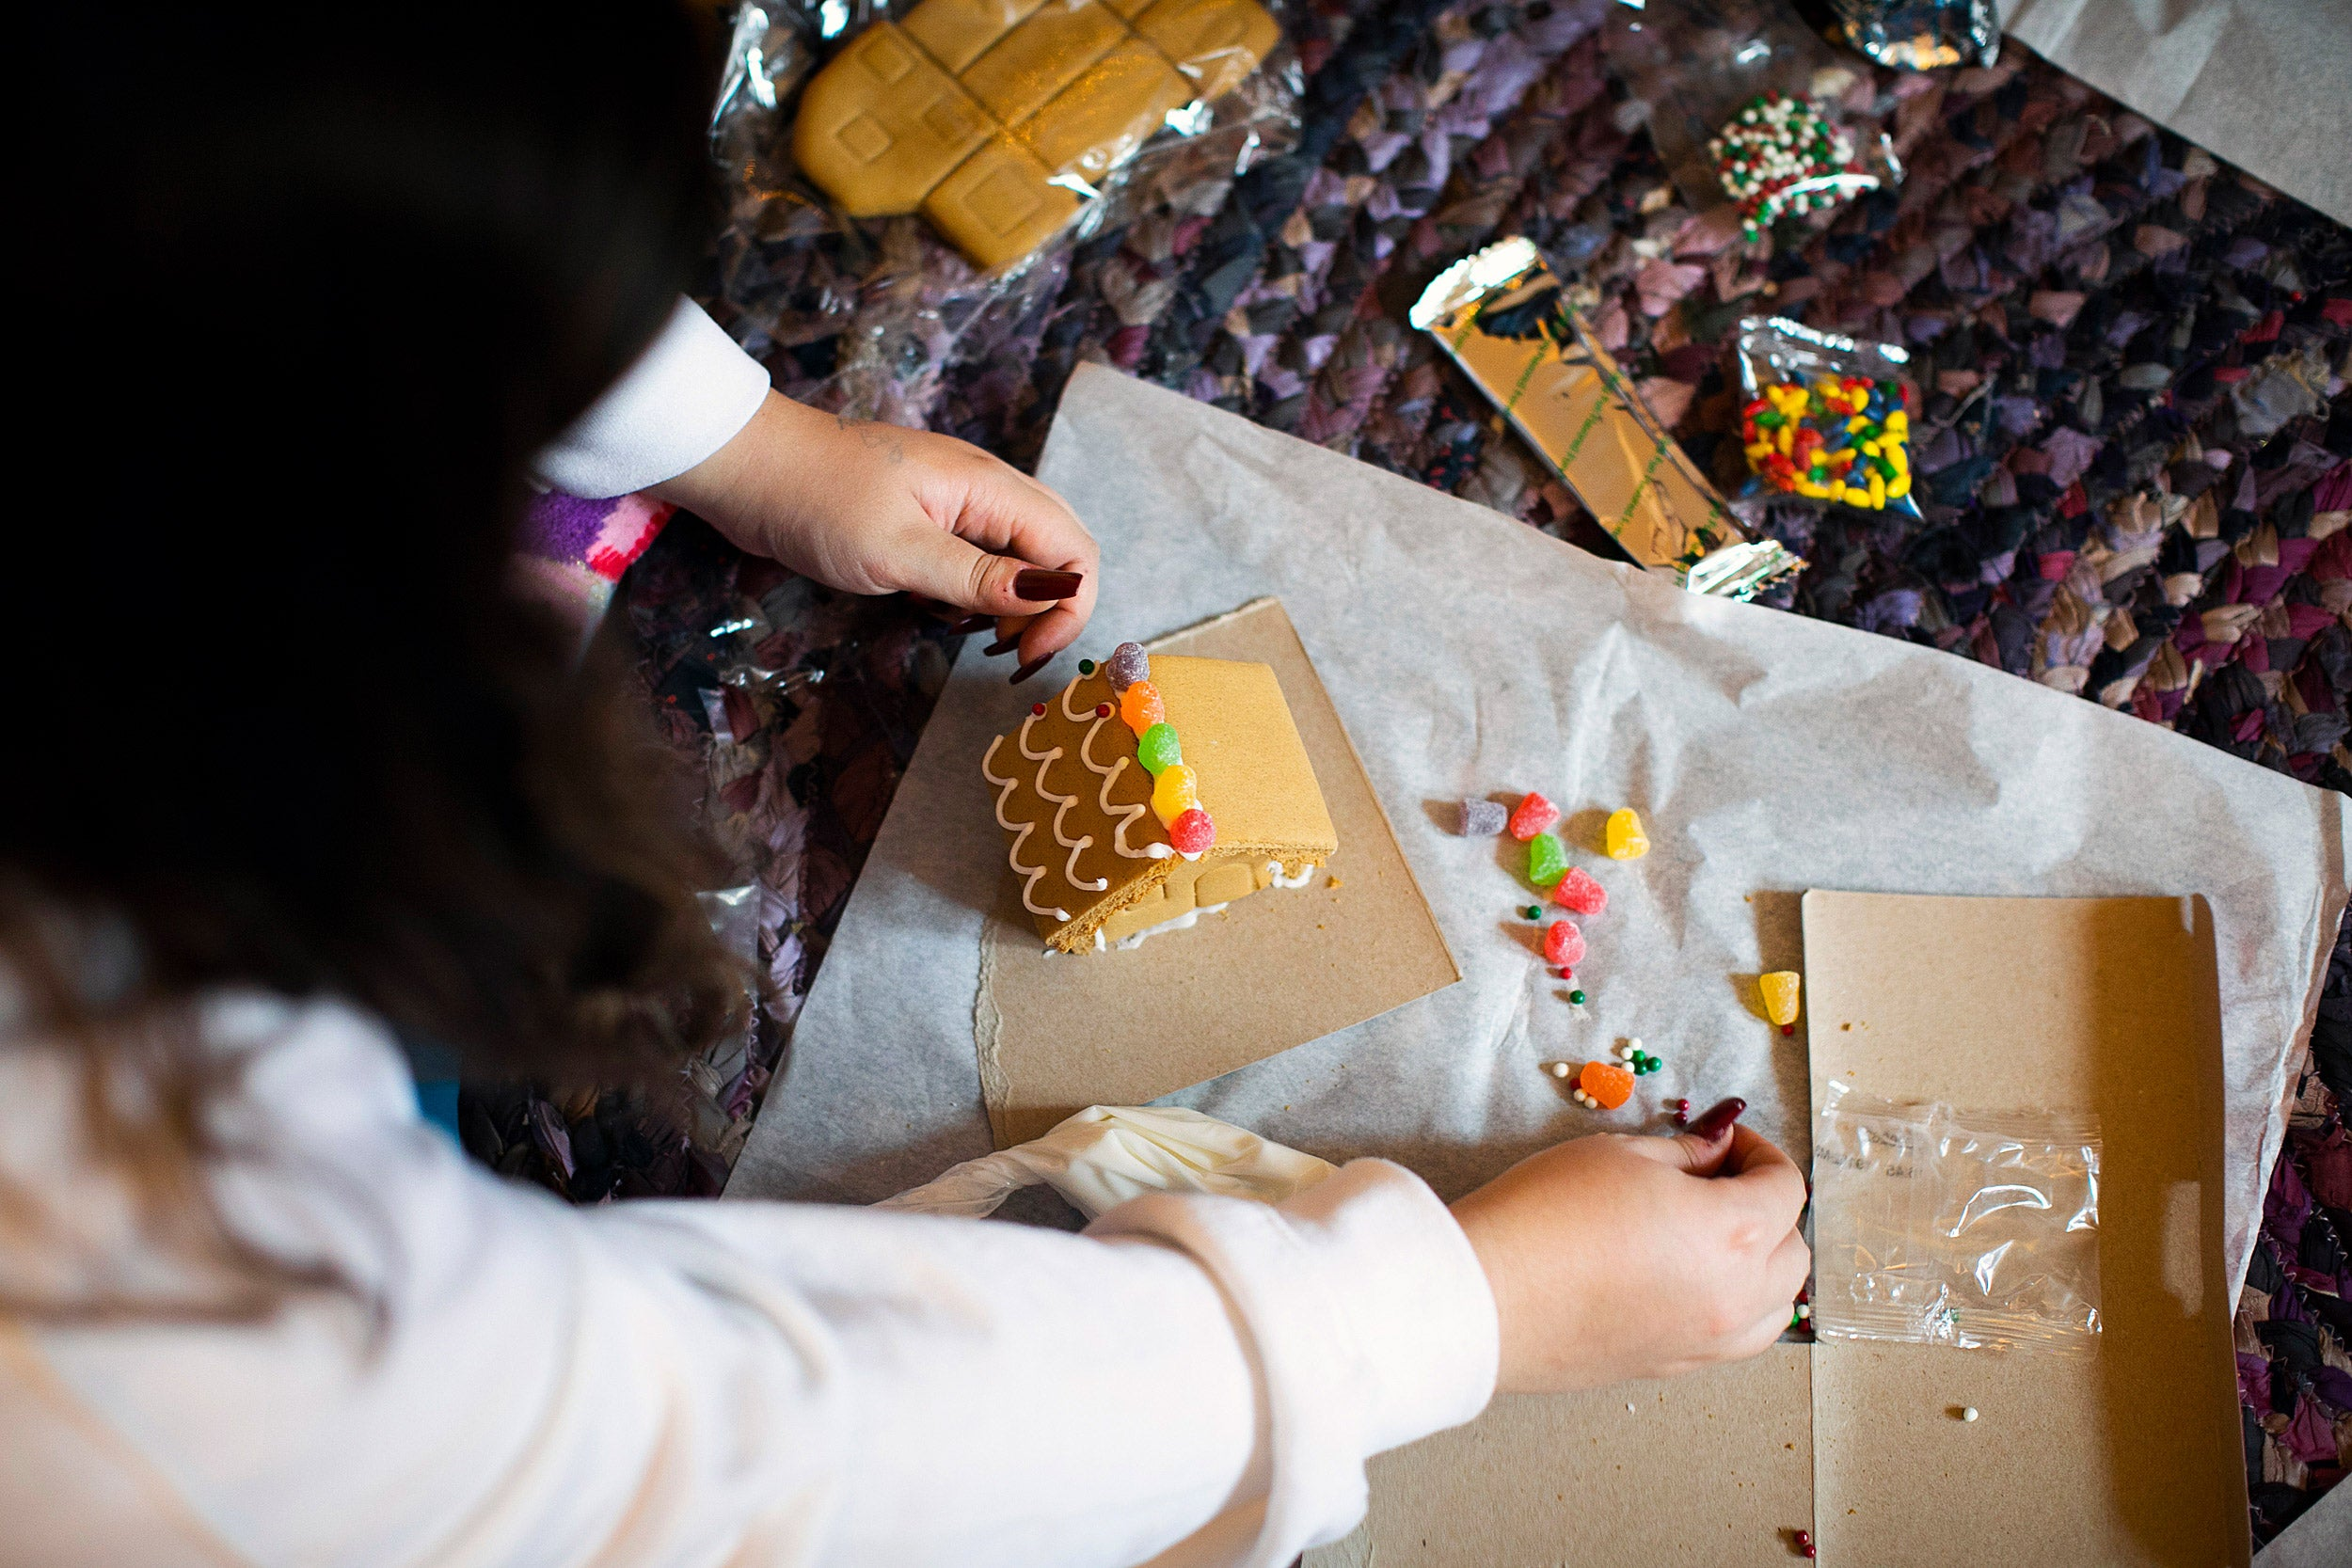 Decorating a gingerbread house.